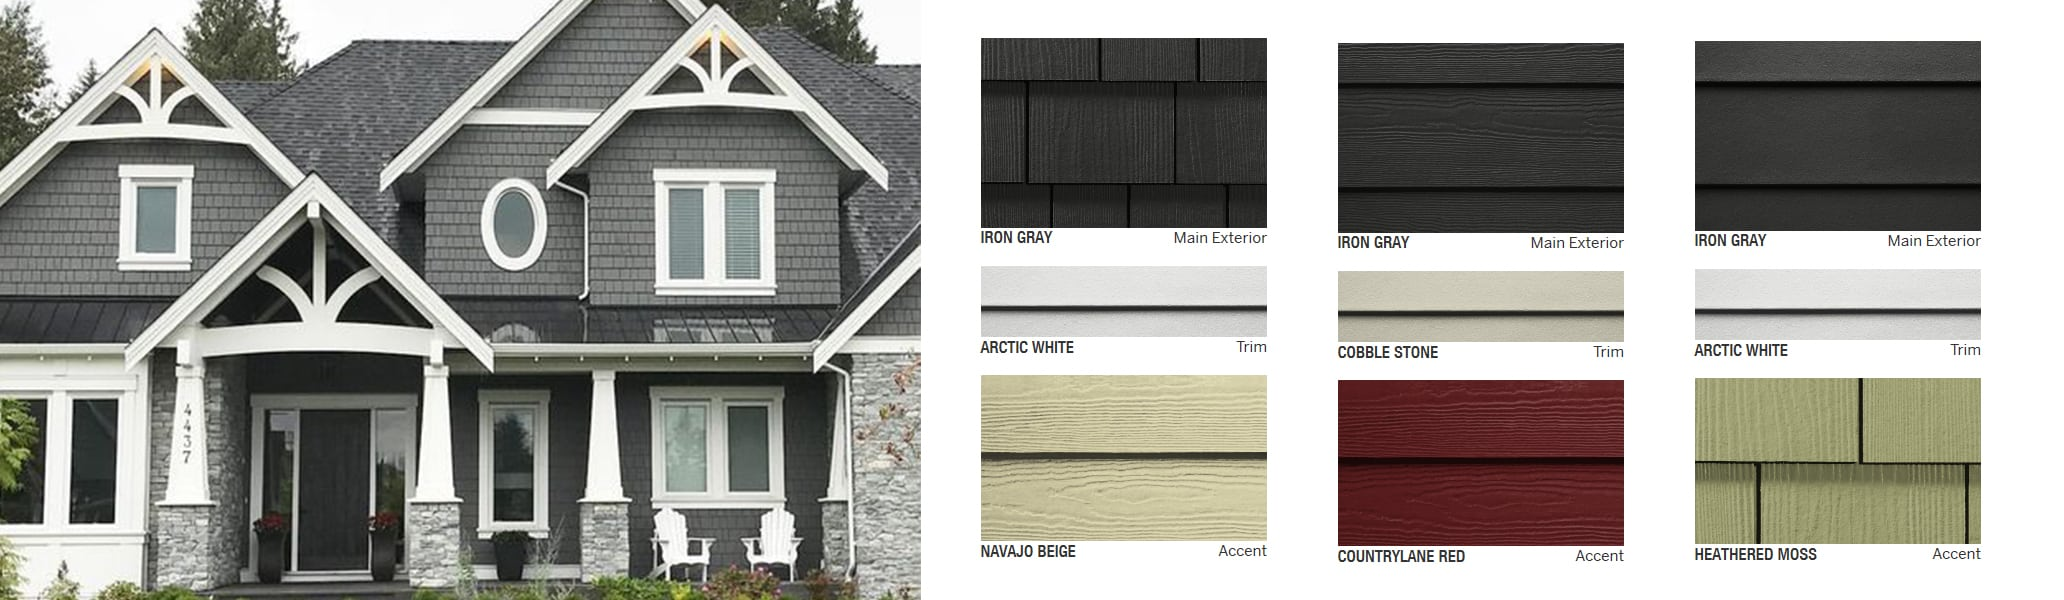 House with James Hardie Shingle Siding in iron gray with contrasting arctic white trims